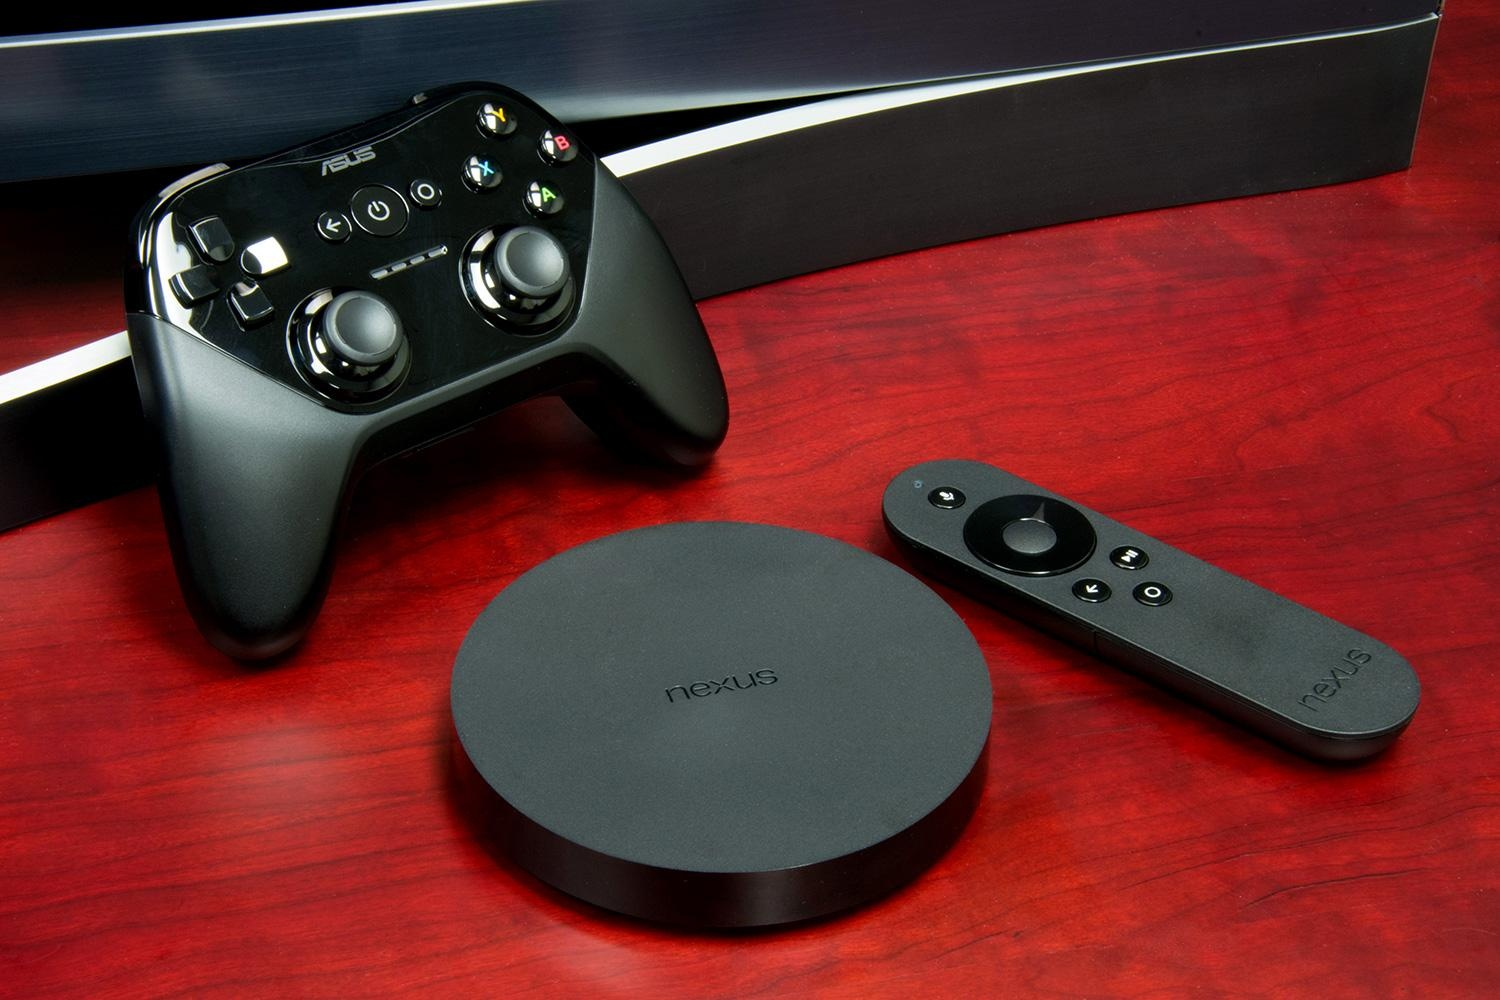 Google has officially discontinued the Nexus Player, its set-top box